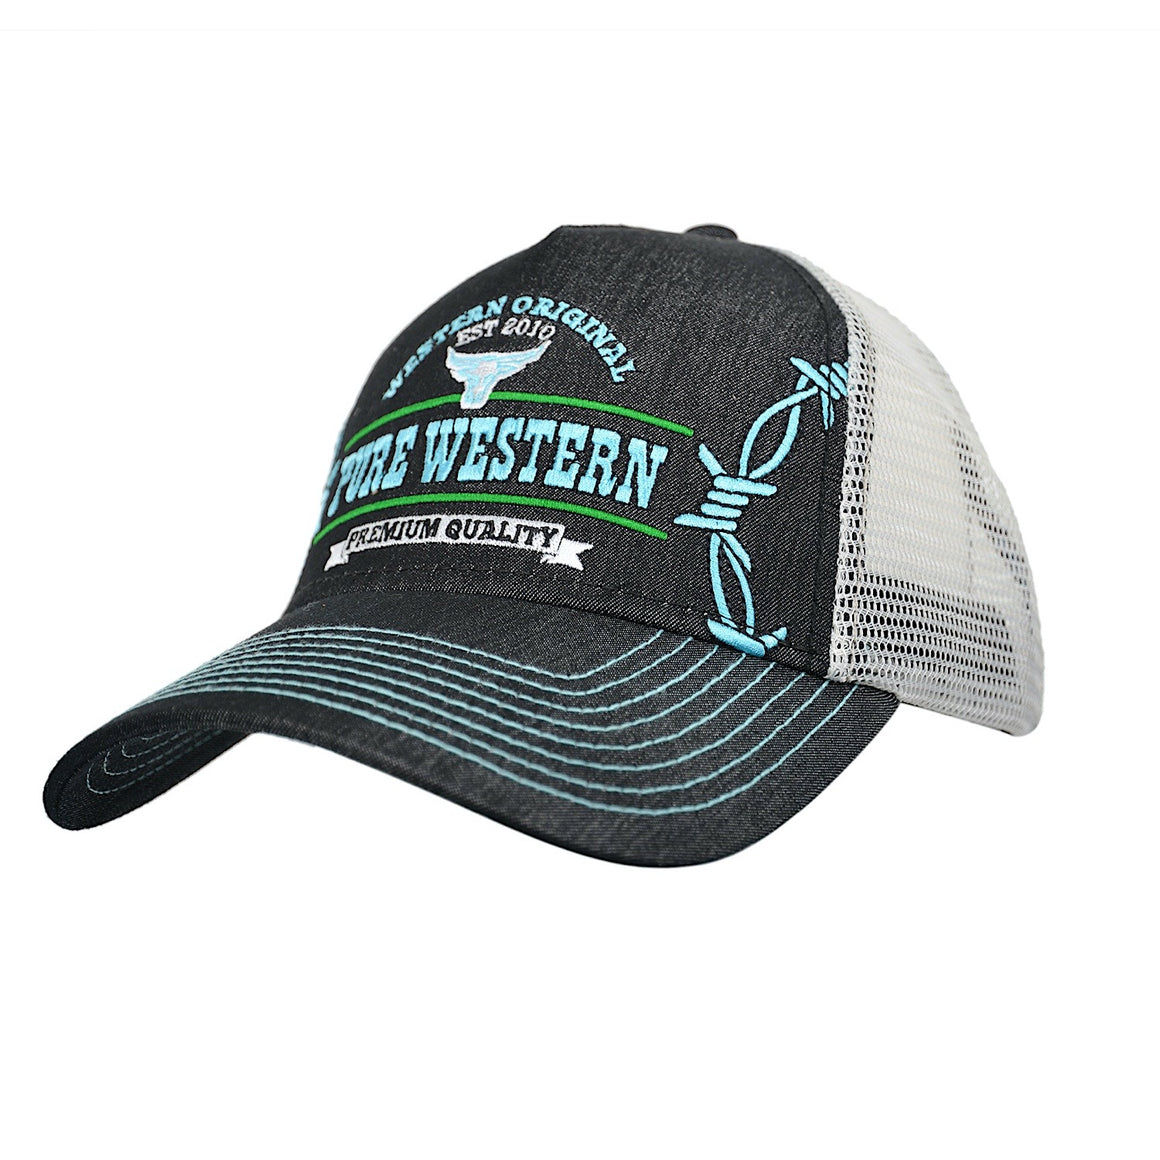 Pure Western Mens Scott Trucker Cap Black